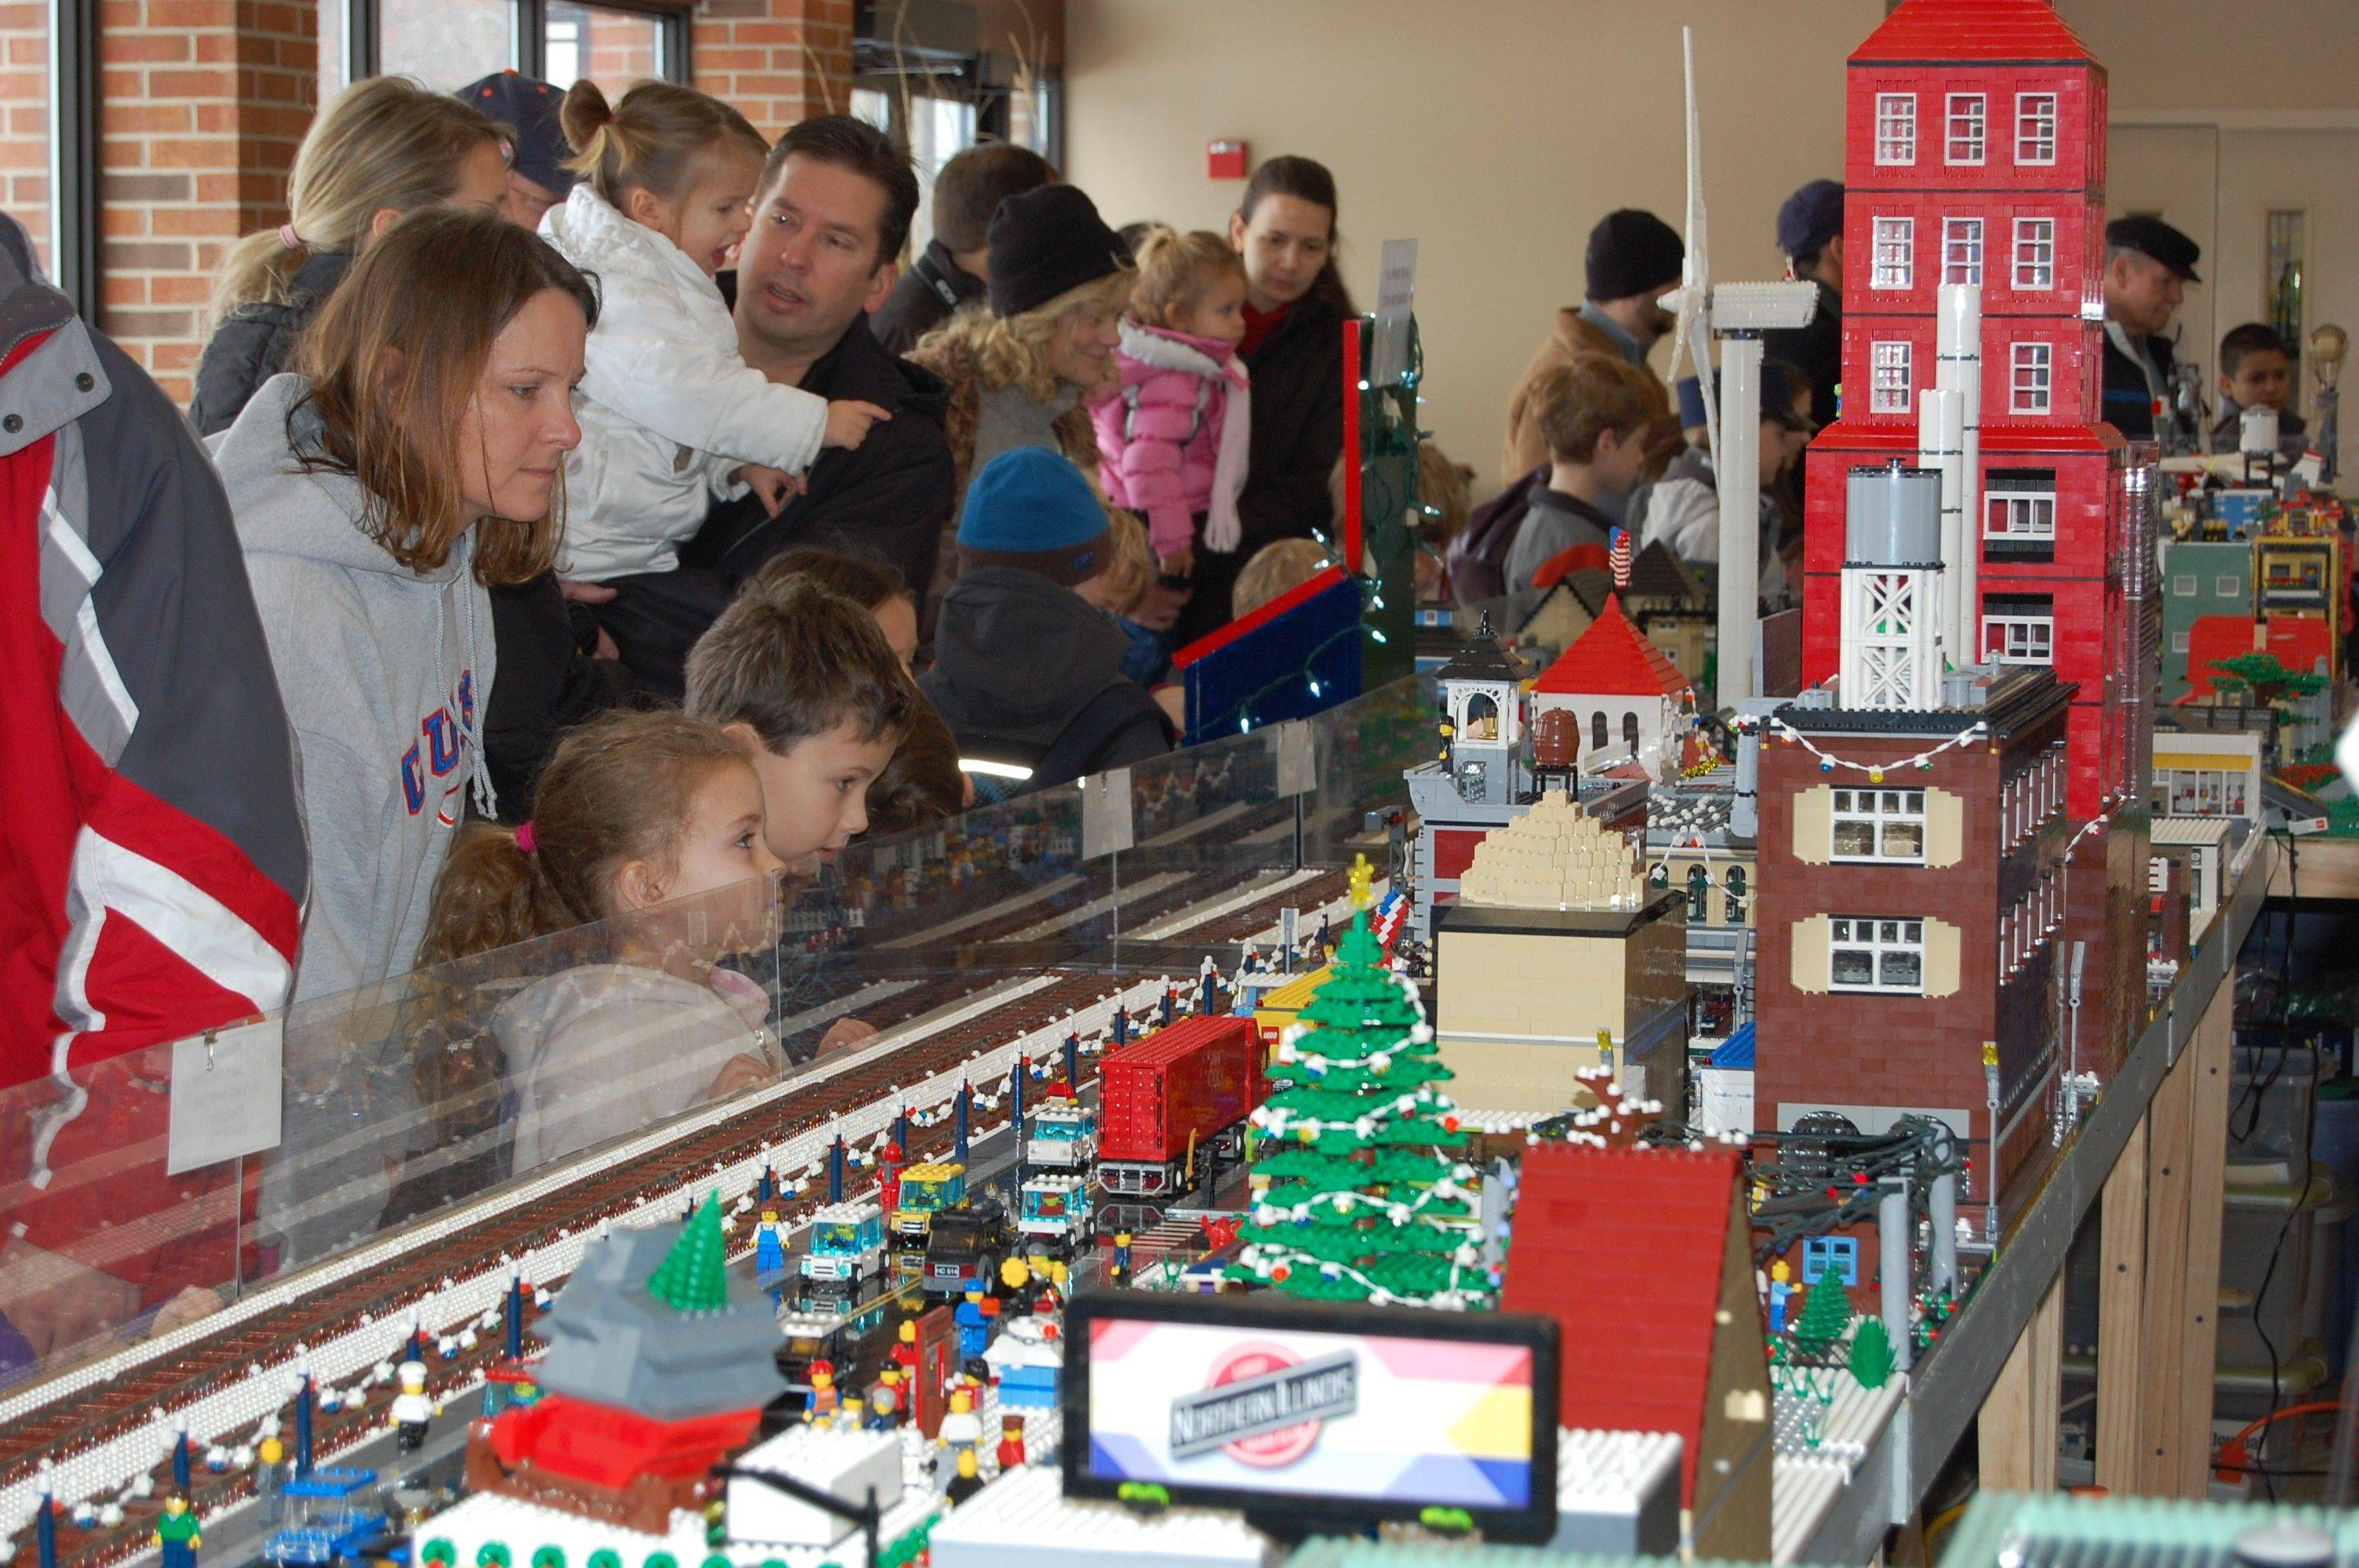 Lego bricks will form a complex design at the annual Lego Train Show at Cantigny Park in Wheaton. The Northern Illinois Lego Train Club presents the show Saturday and Sunday, Dec. 10-11.